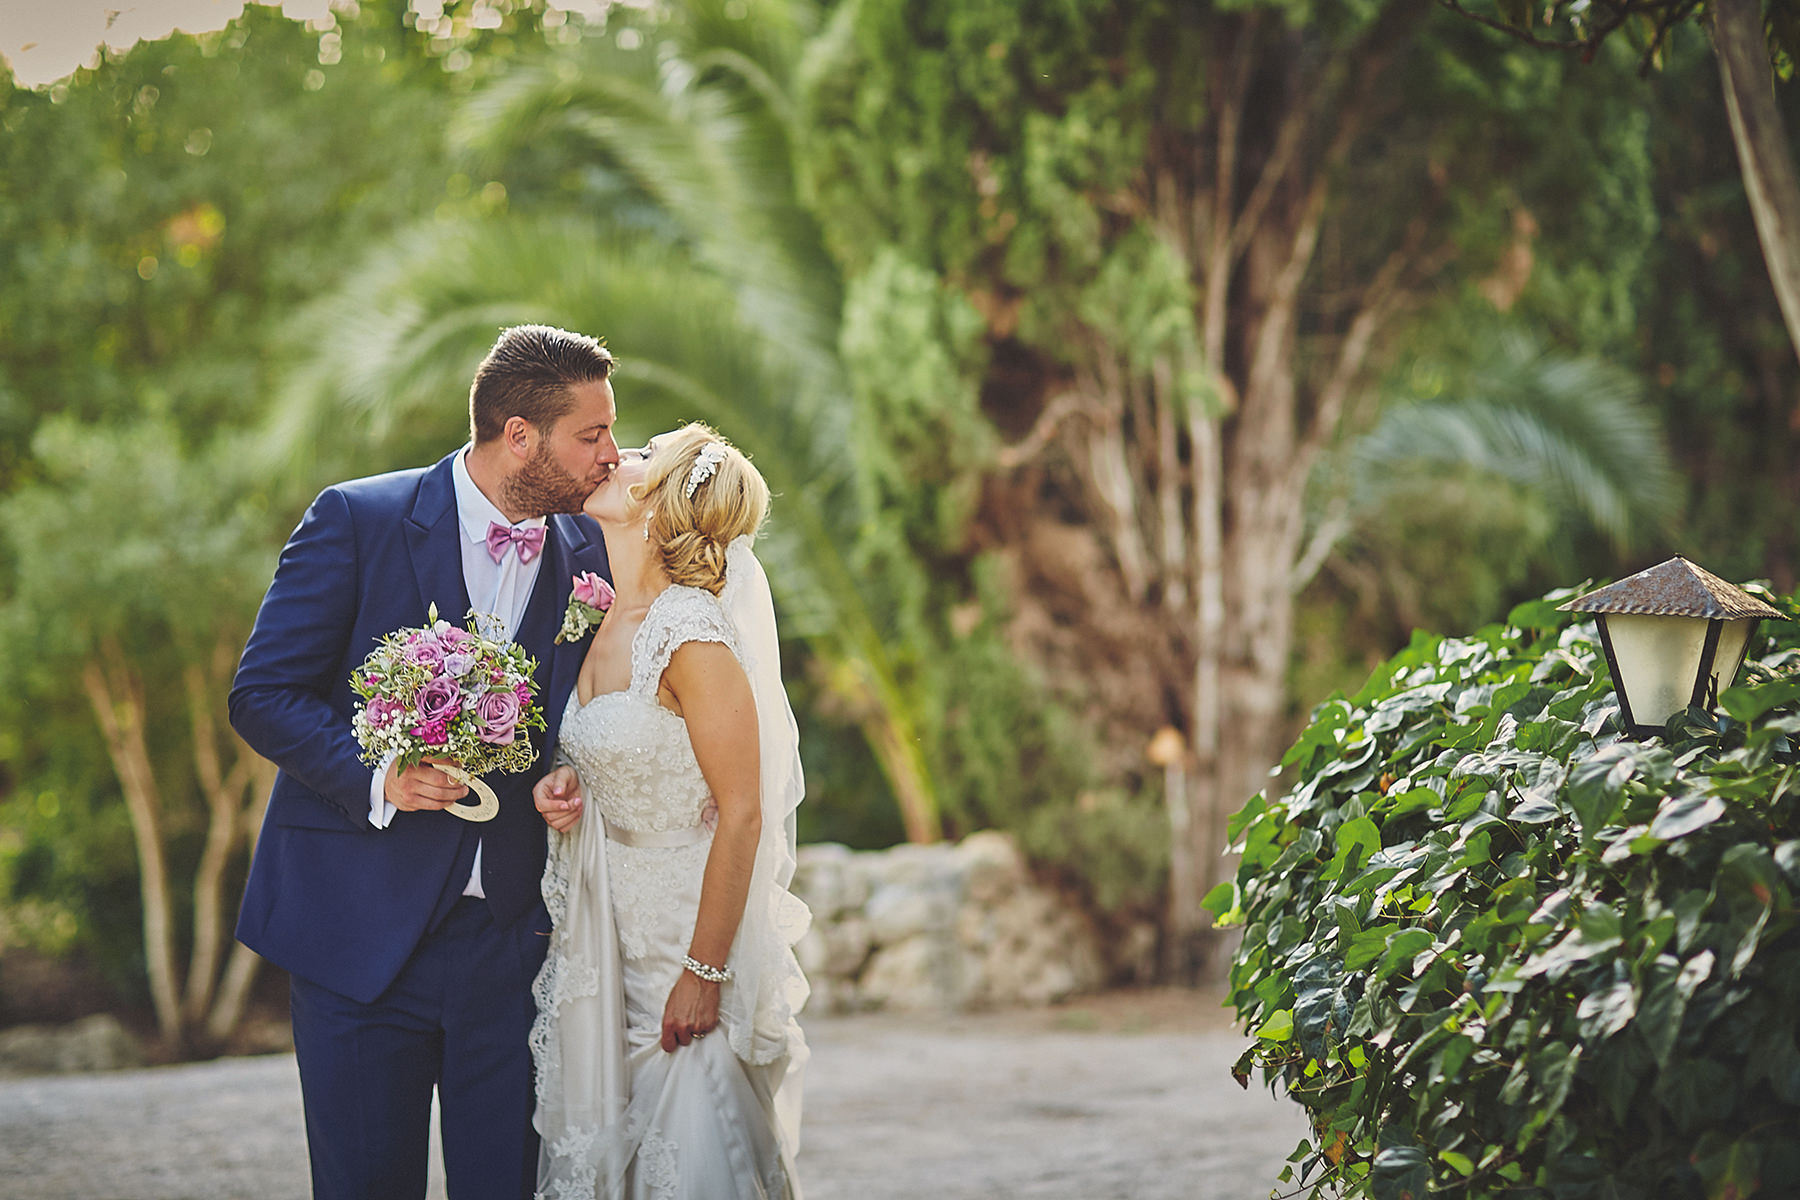 328 - Destination wedding in a magical Mallorca